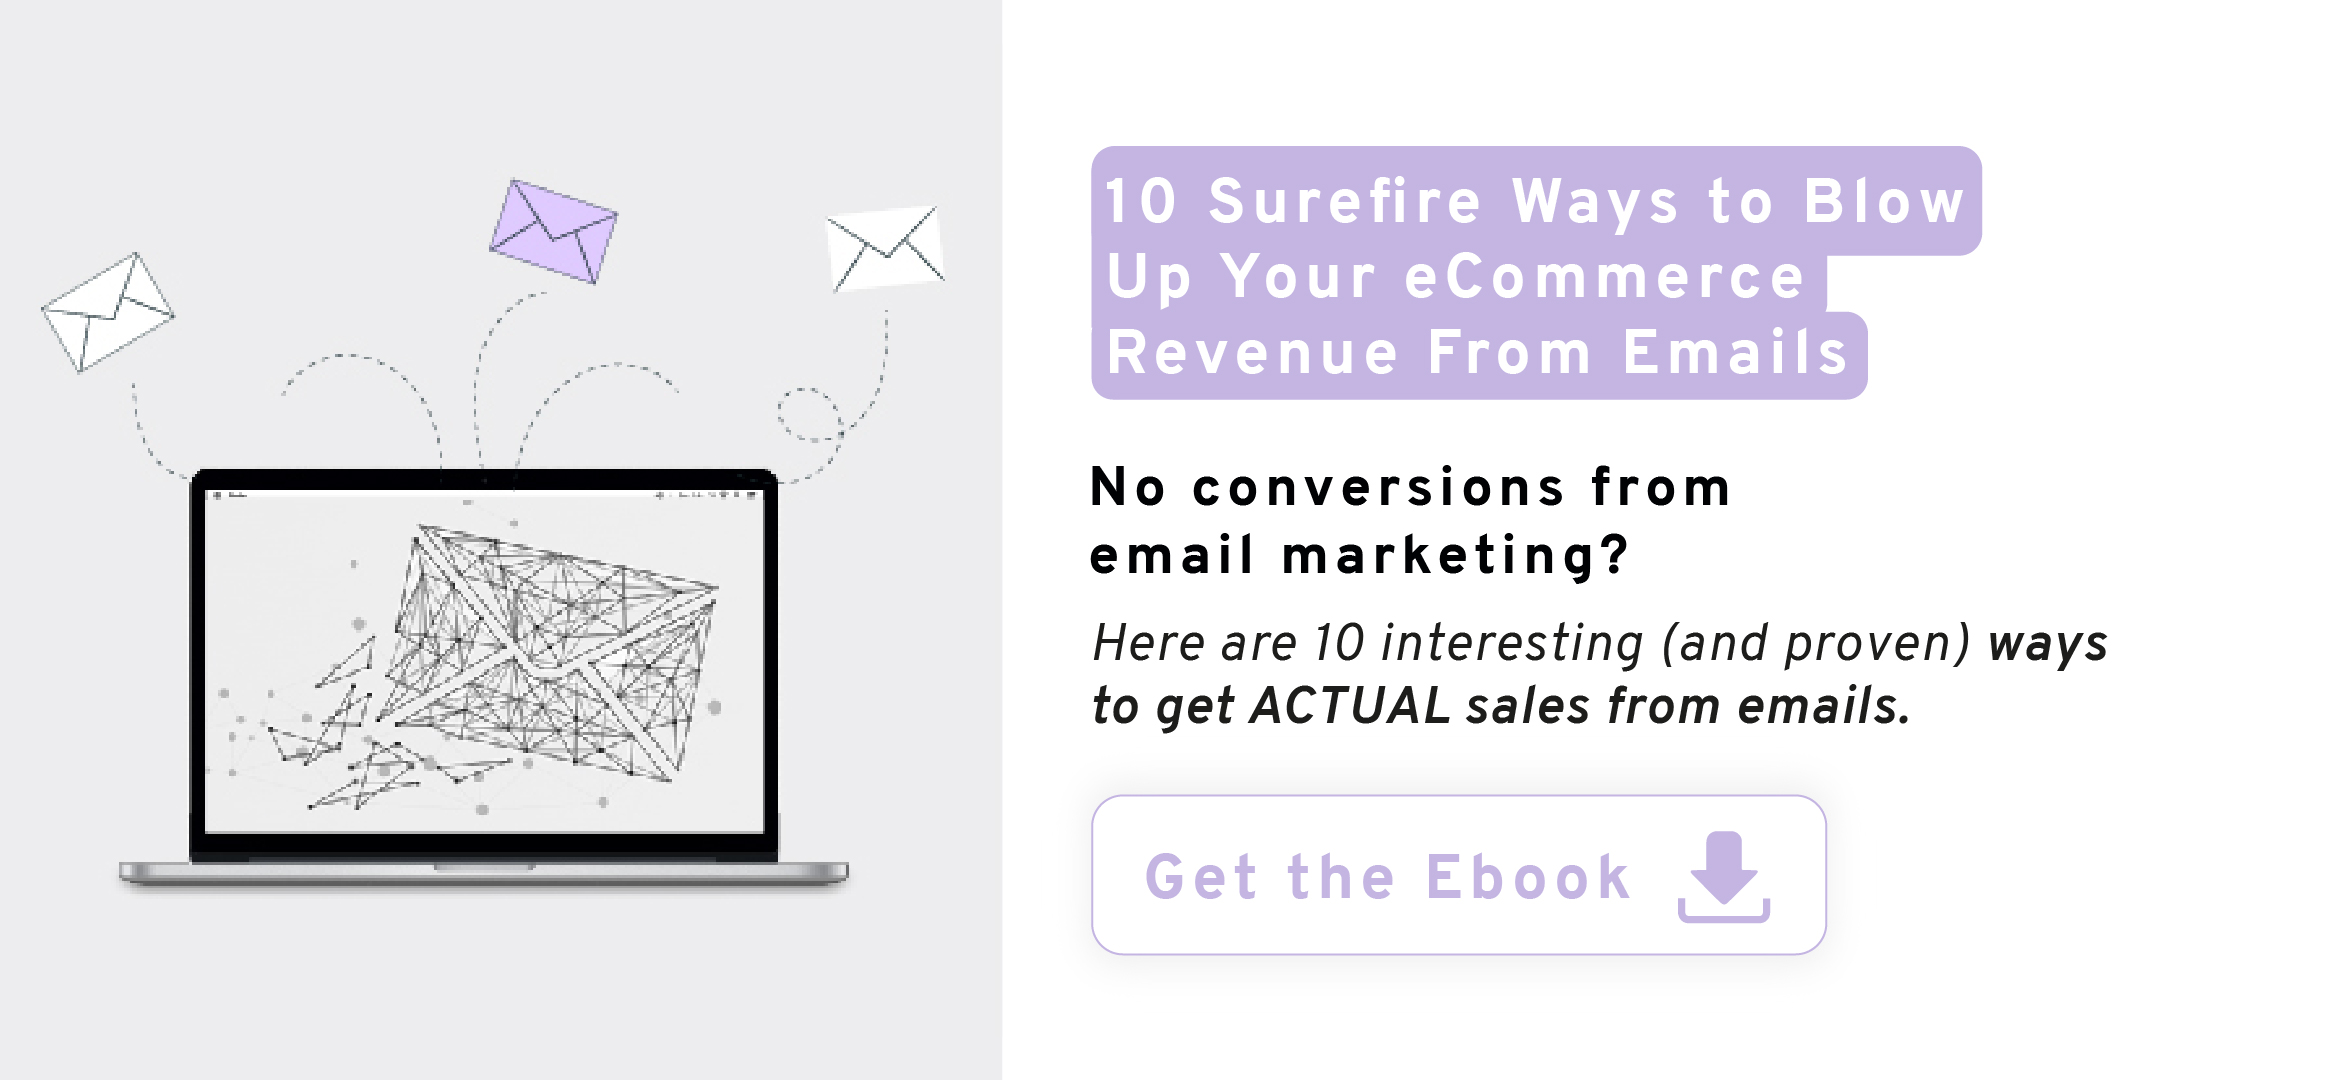 10 Surefire Ways to Blow Up Your eCommerce Revenue From Emails